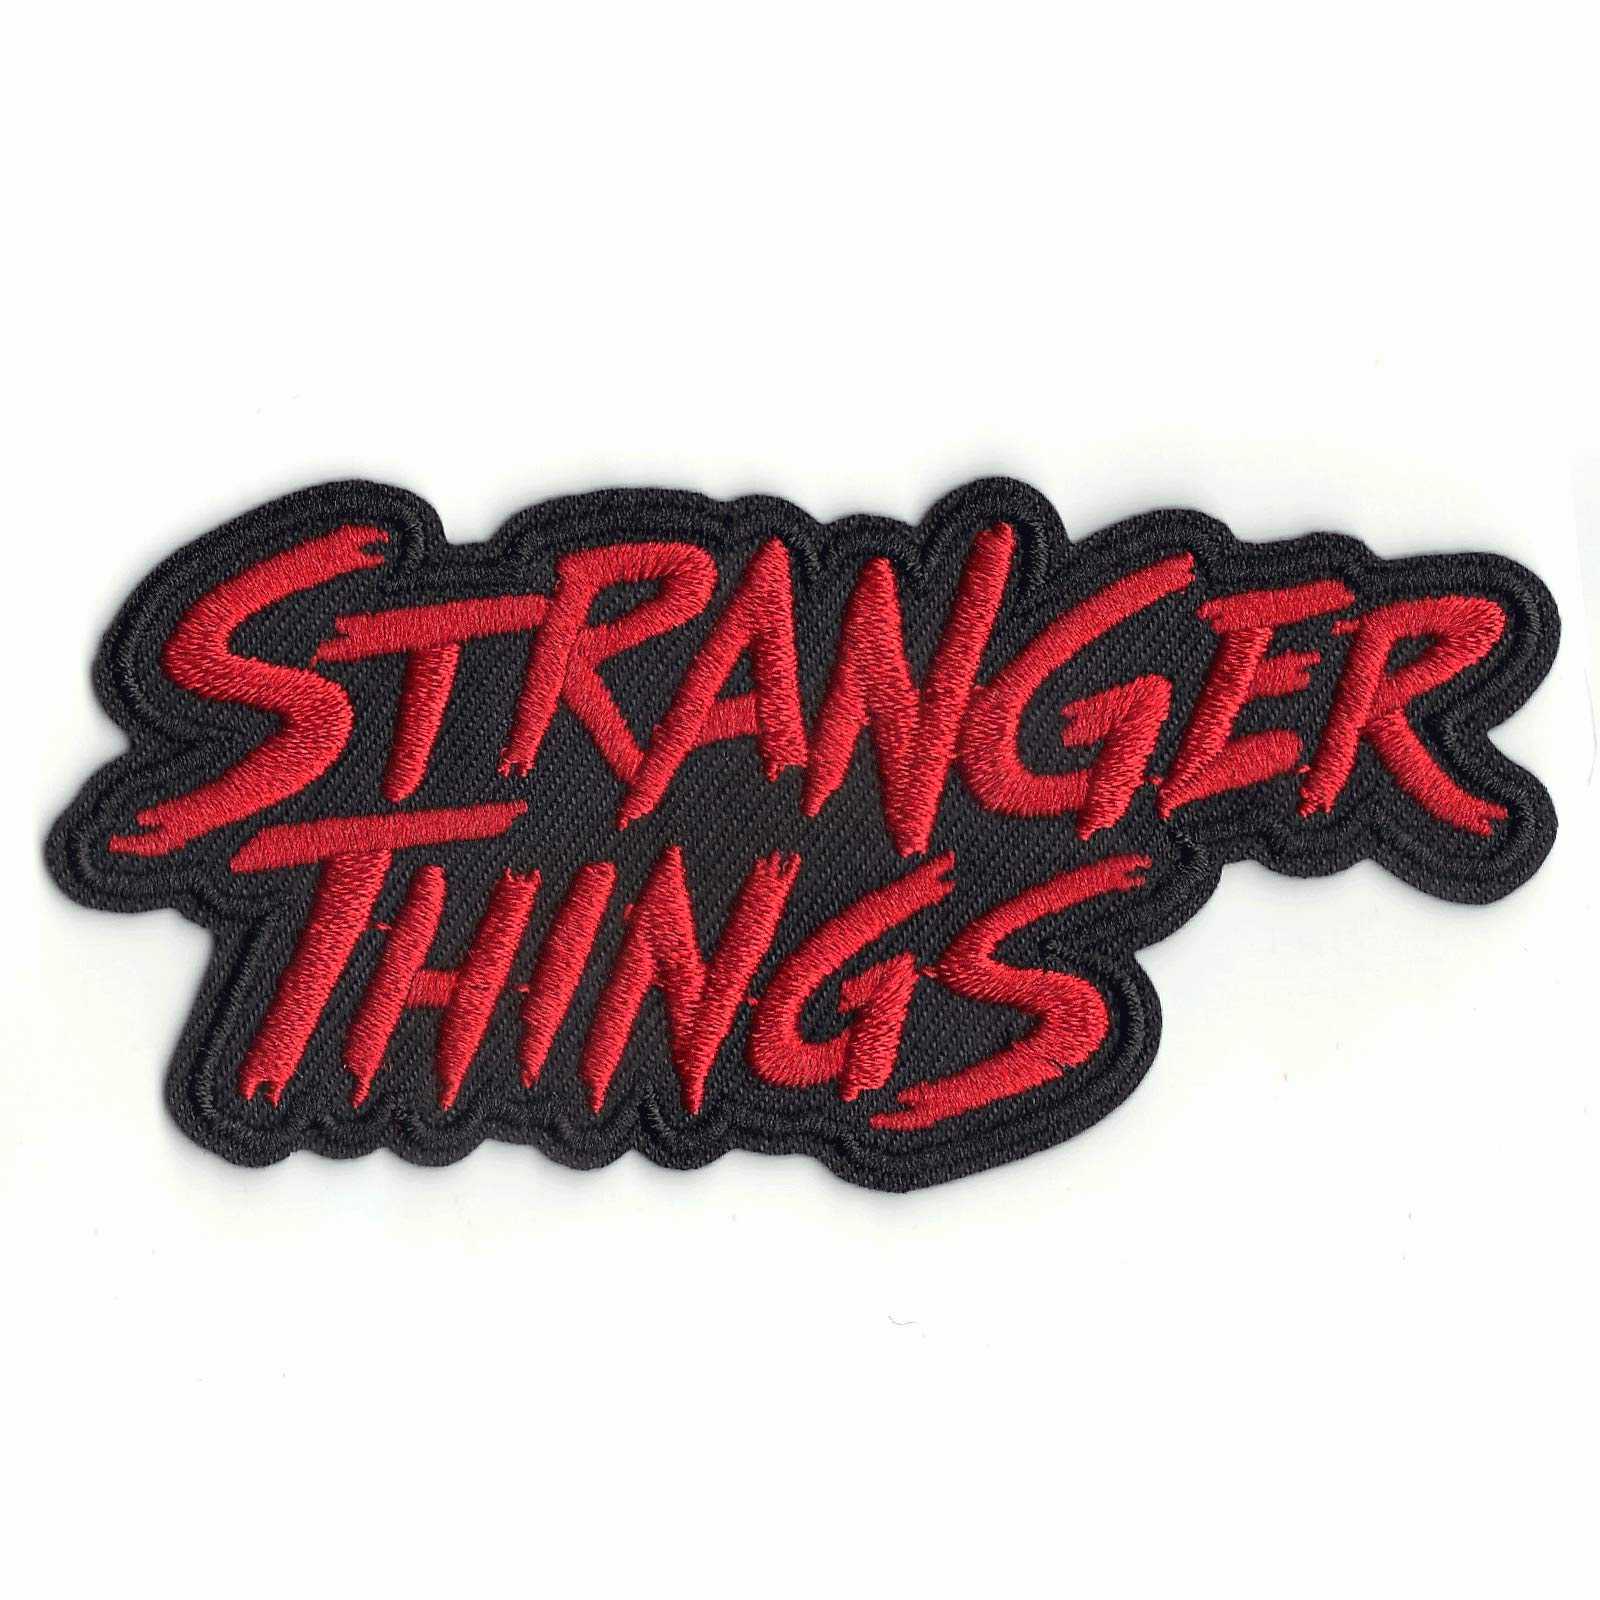 Stranger Things Will Body Shot Netflix Original TV Embroidered Iron On Patch